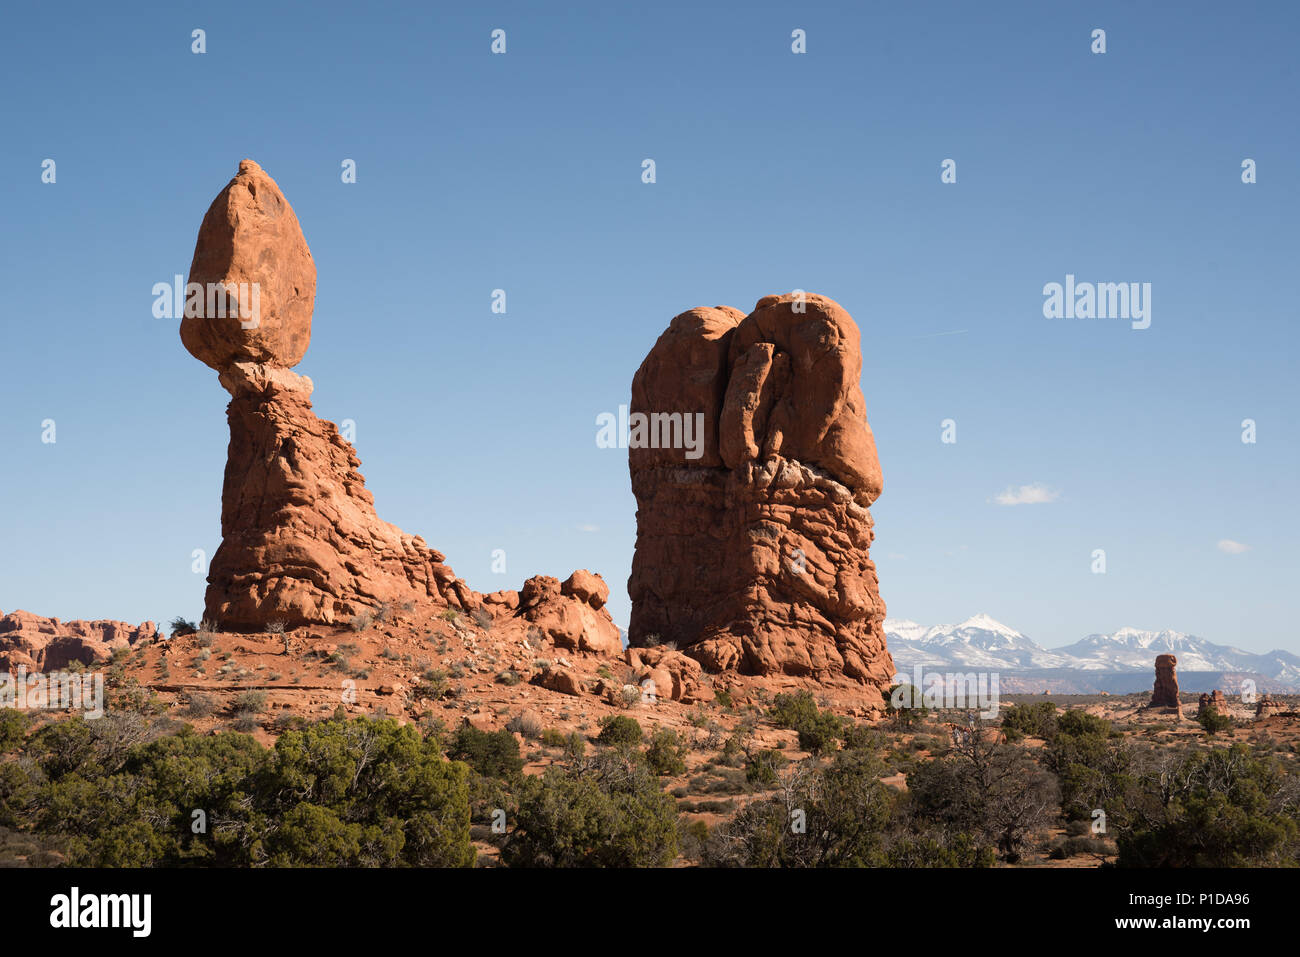 Rock formations in Arches National Park, Utah. - Stock Image